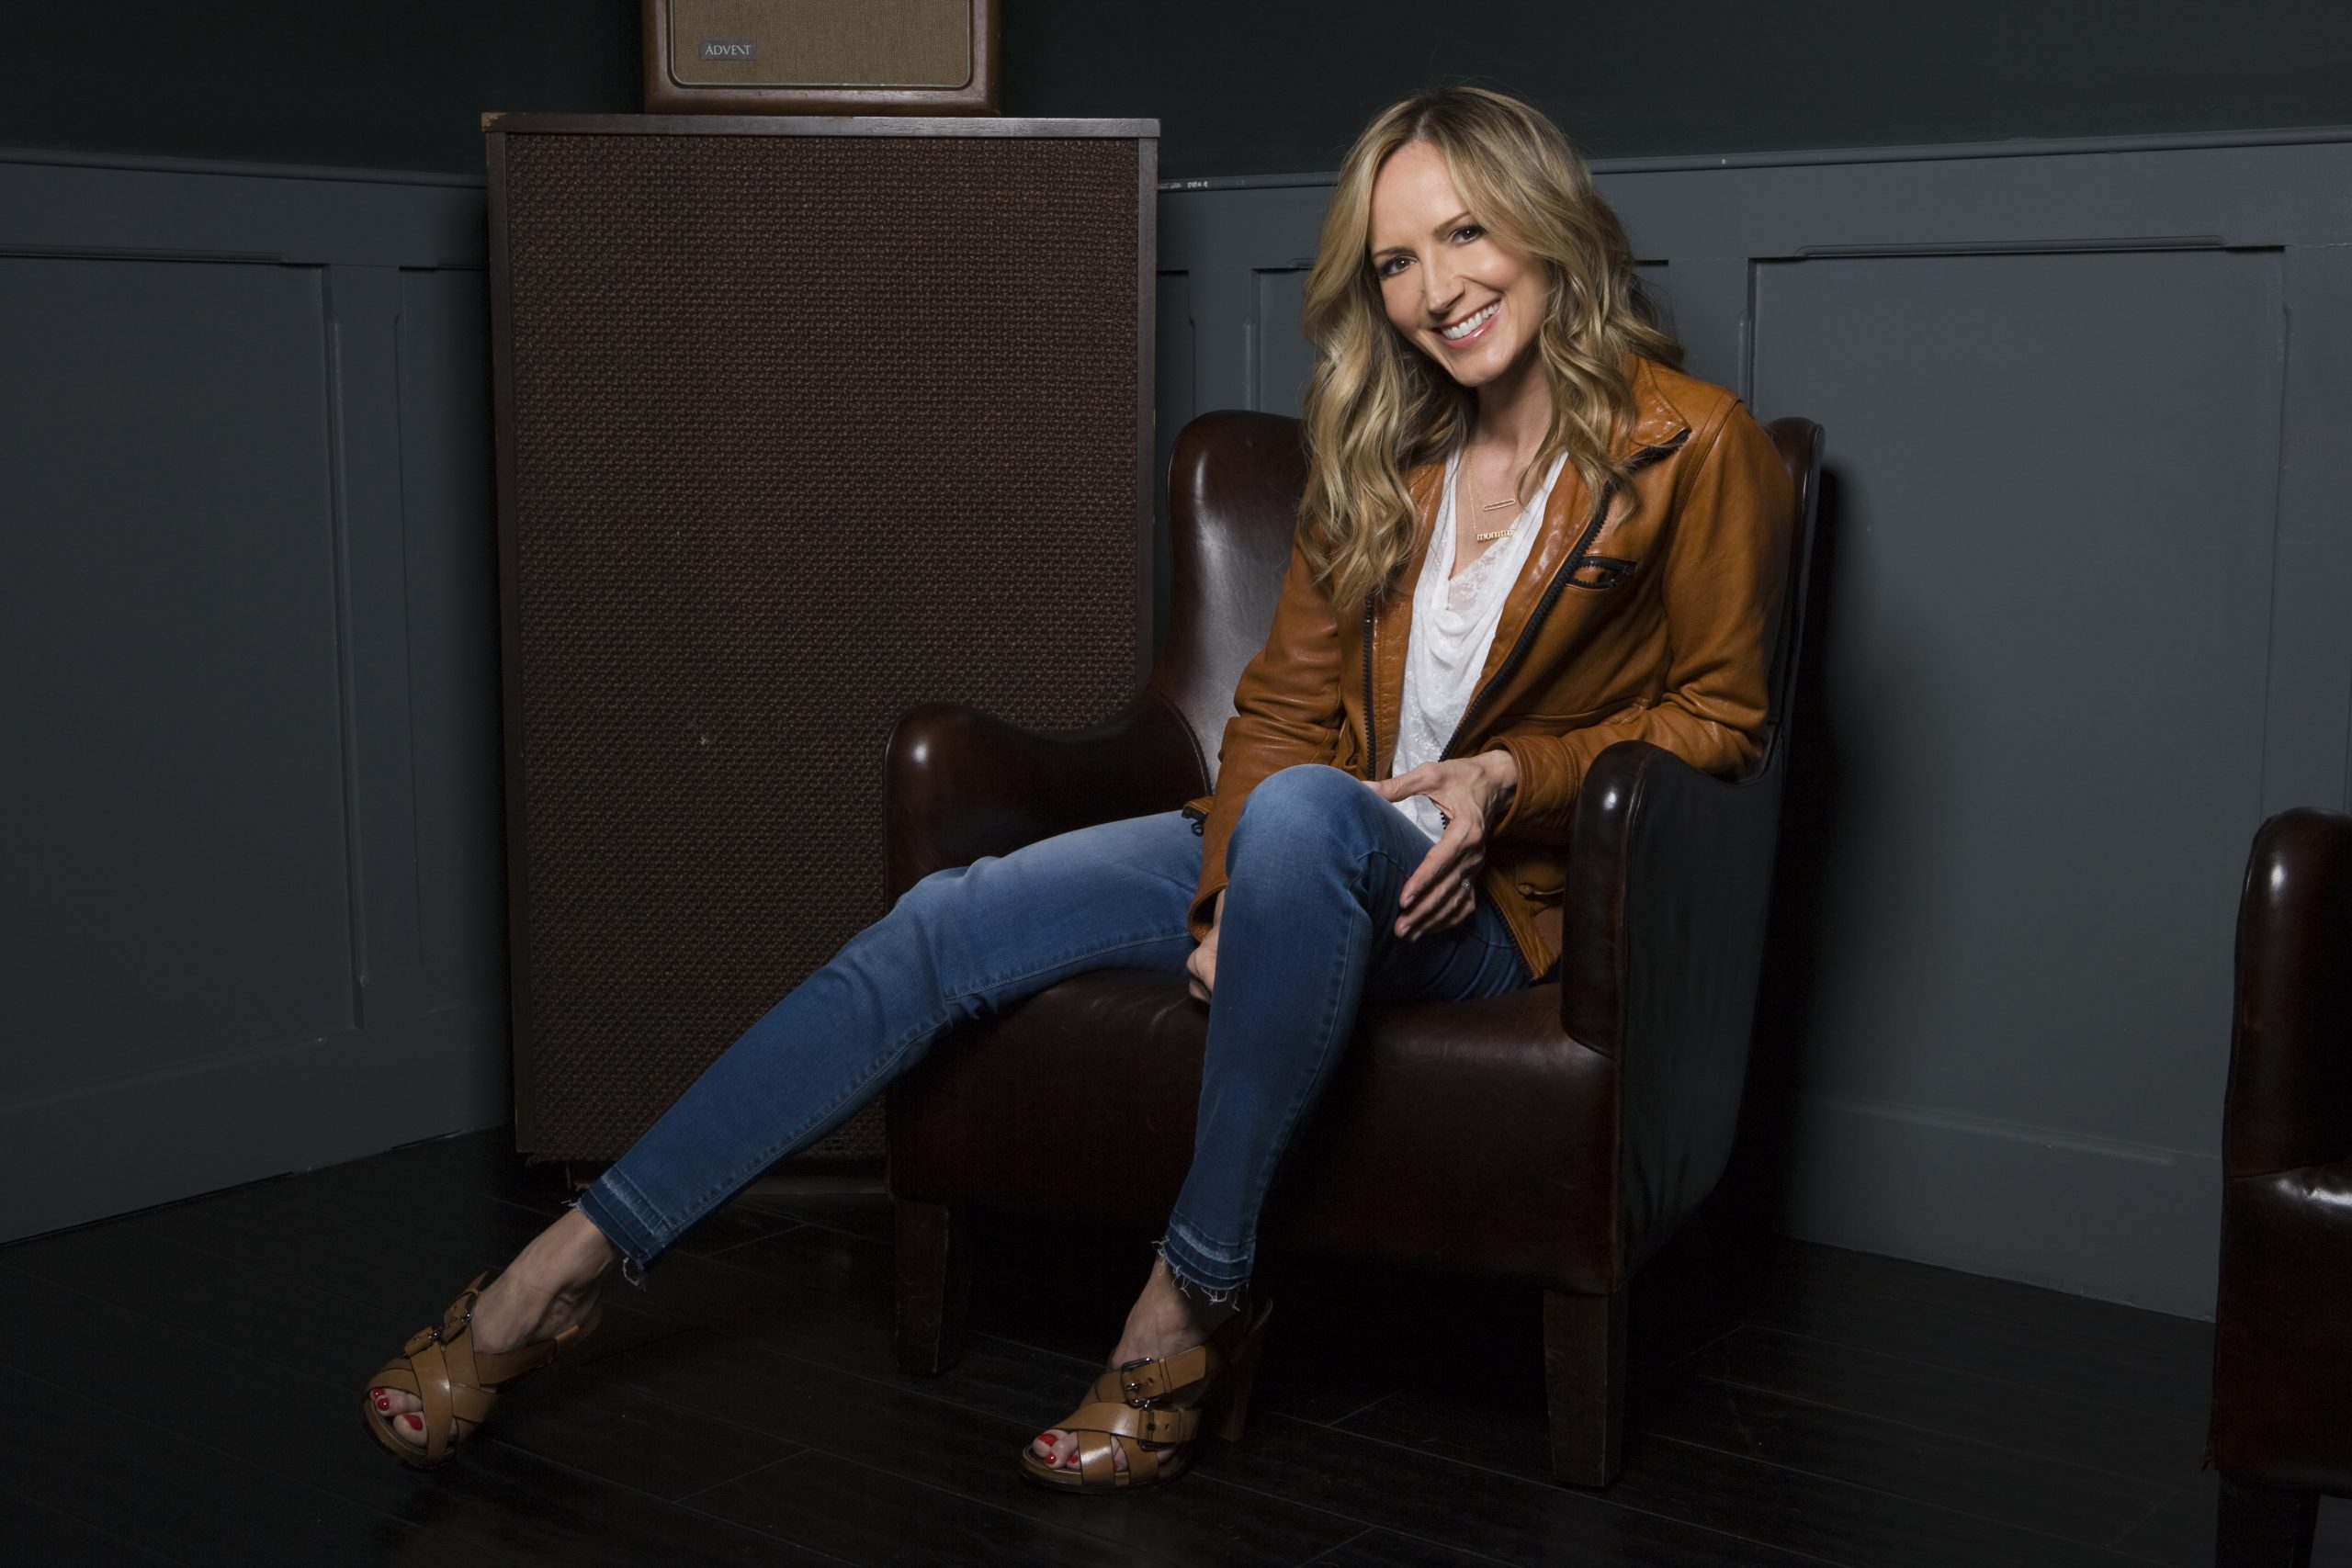 Chely Wright_HI RES_photo credit Matthew Rodgers_XZ5O6109 (2)